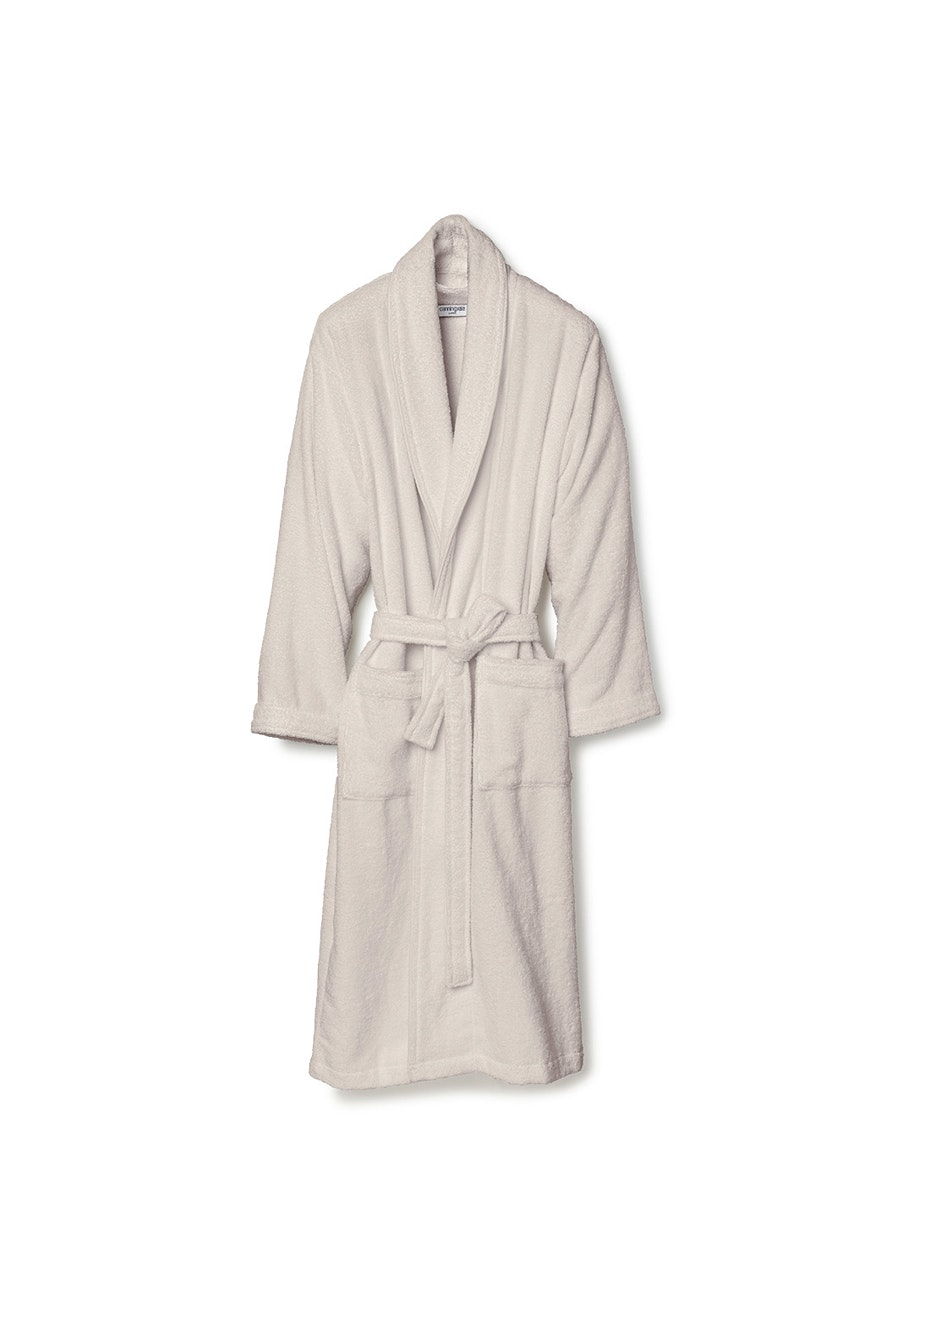 Canningvale - Medium Classic Cotton Terry Bathrobe - Natural